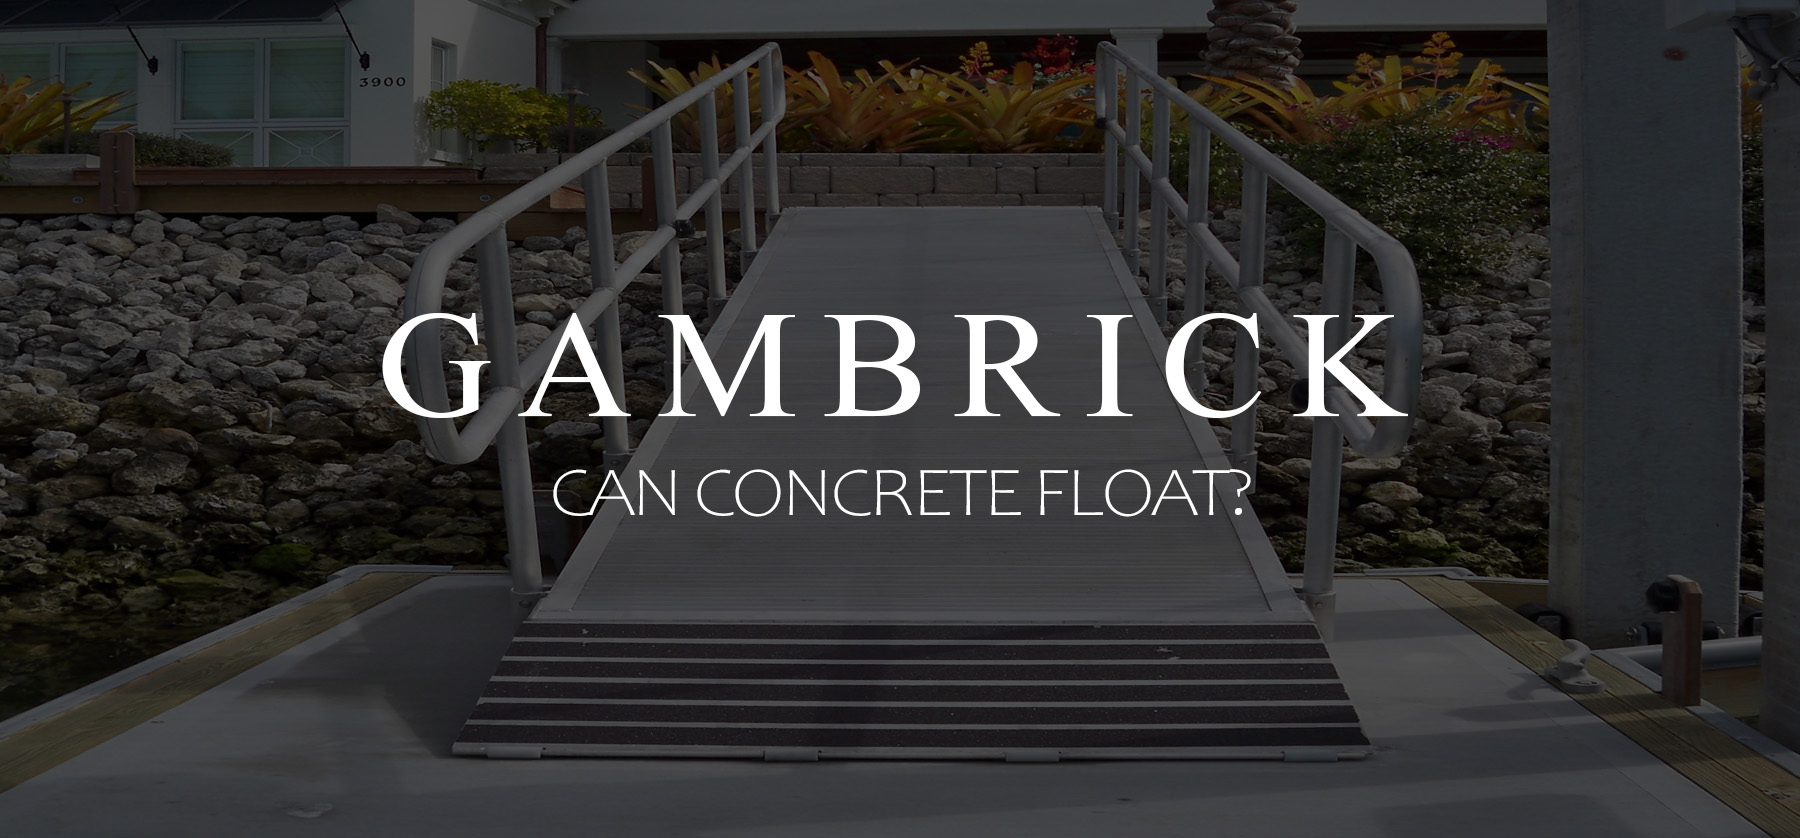 Can concrete float banner pic